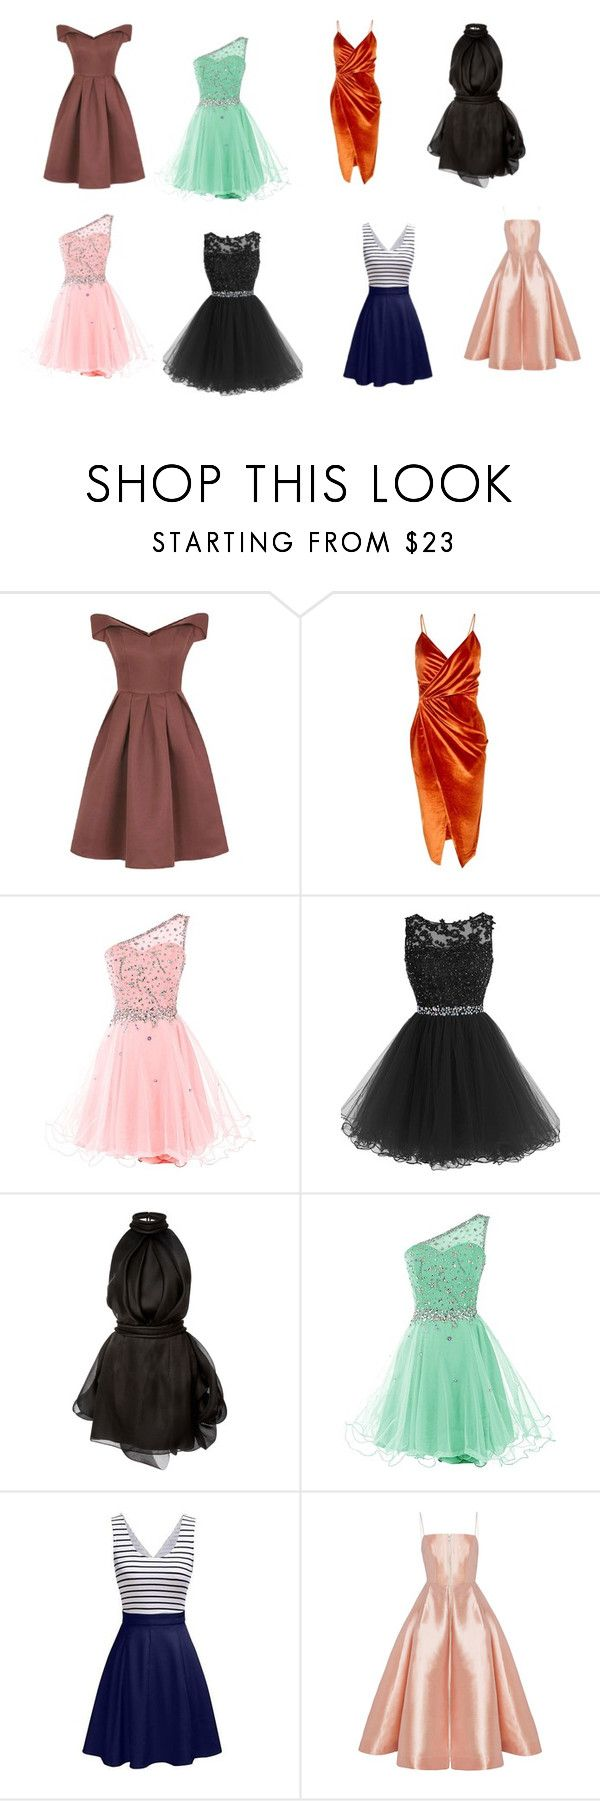 """""""Dresses"""" by nurzarmina on Polyvore featuring Chi Chi, Boohoo, Brandon Maxwell and Alex Perry"""